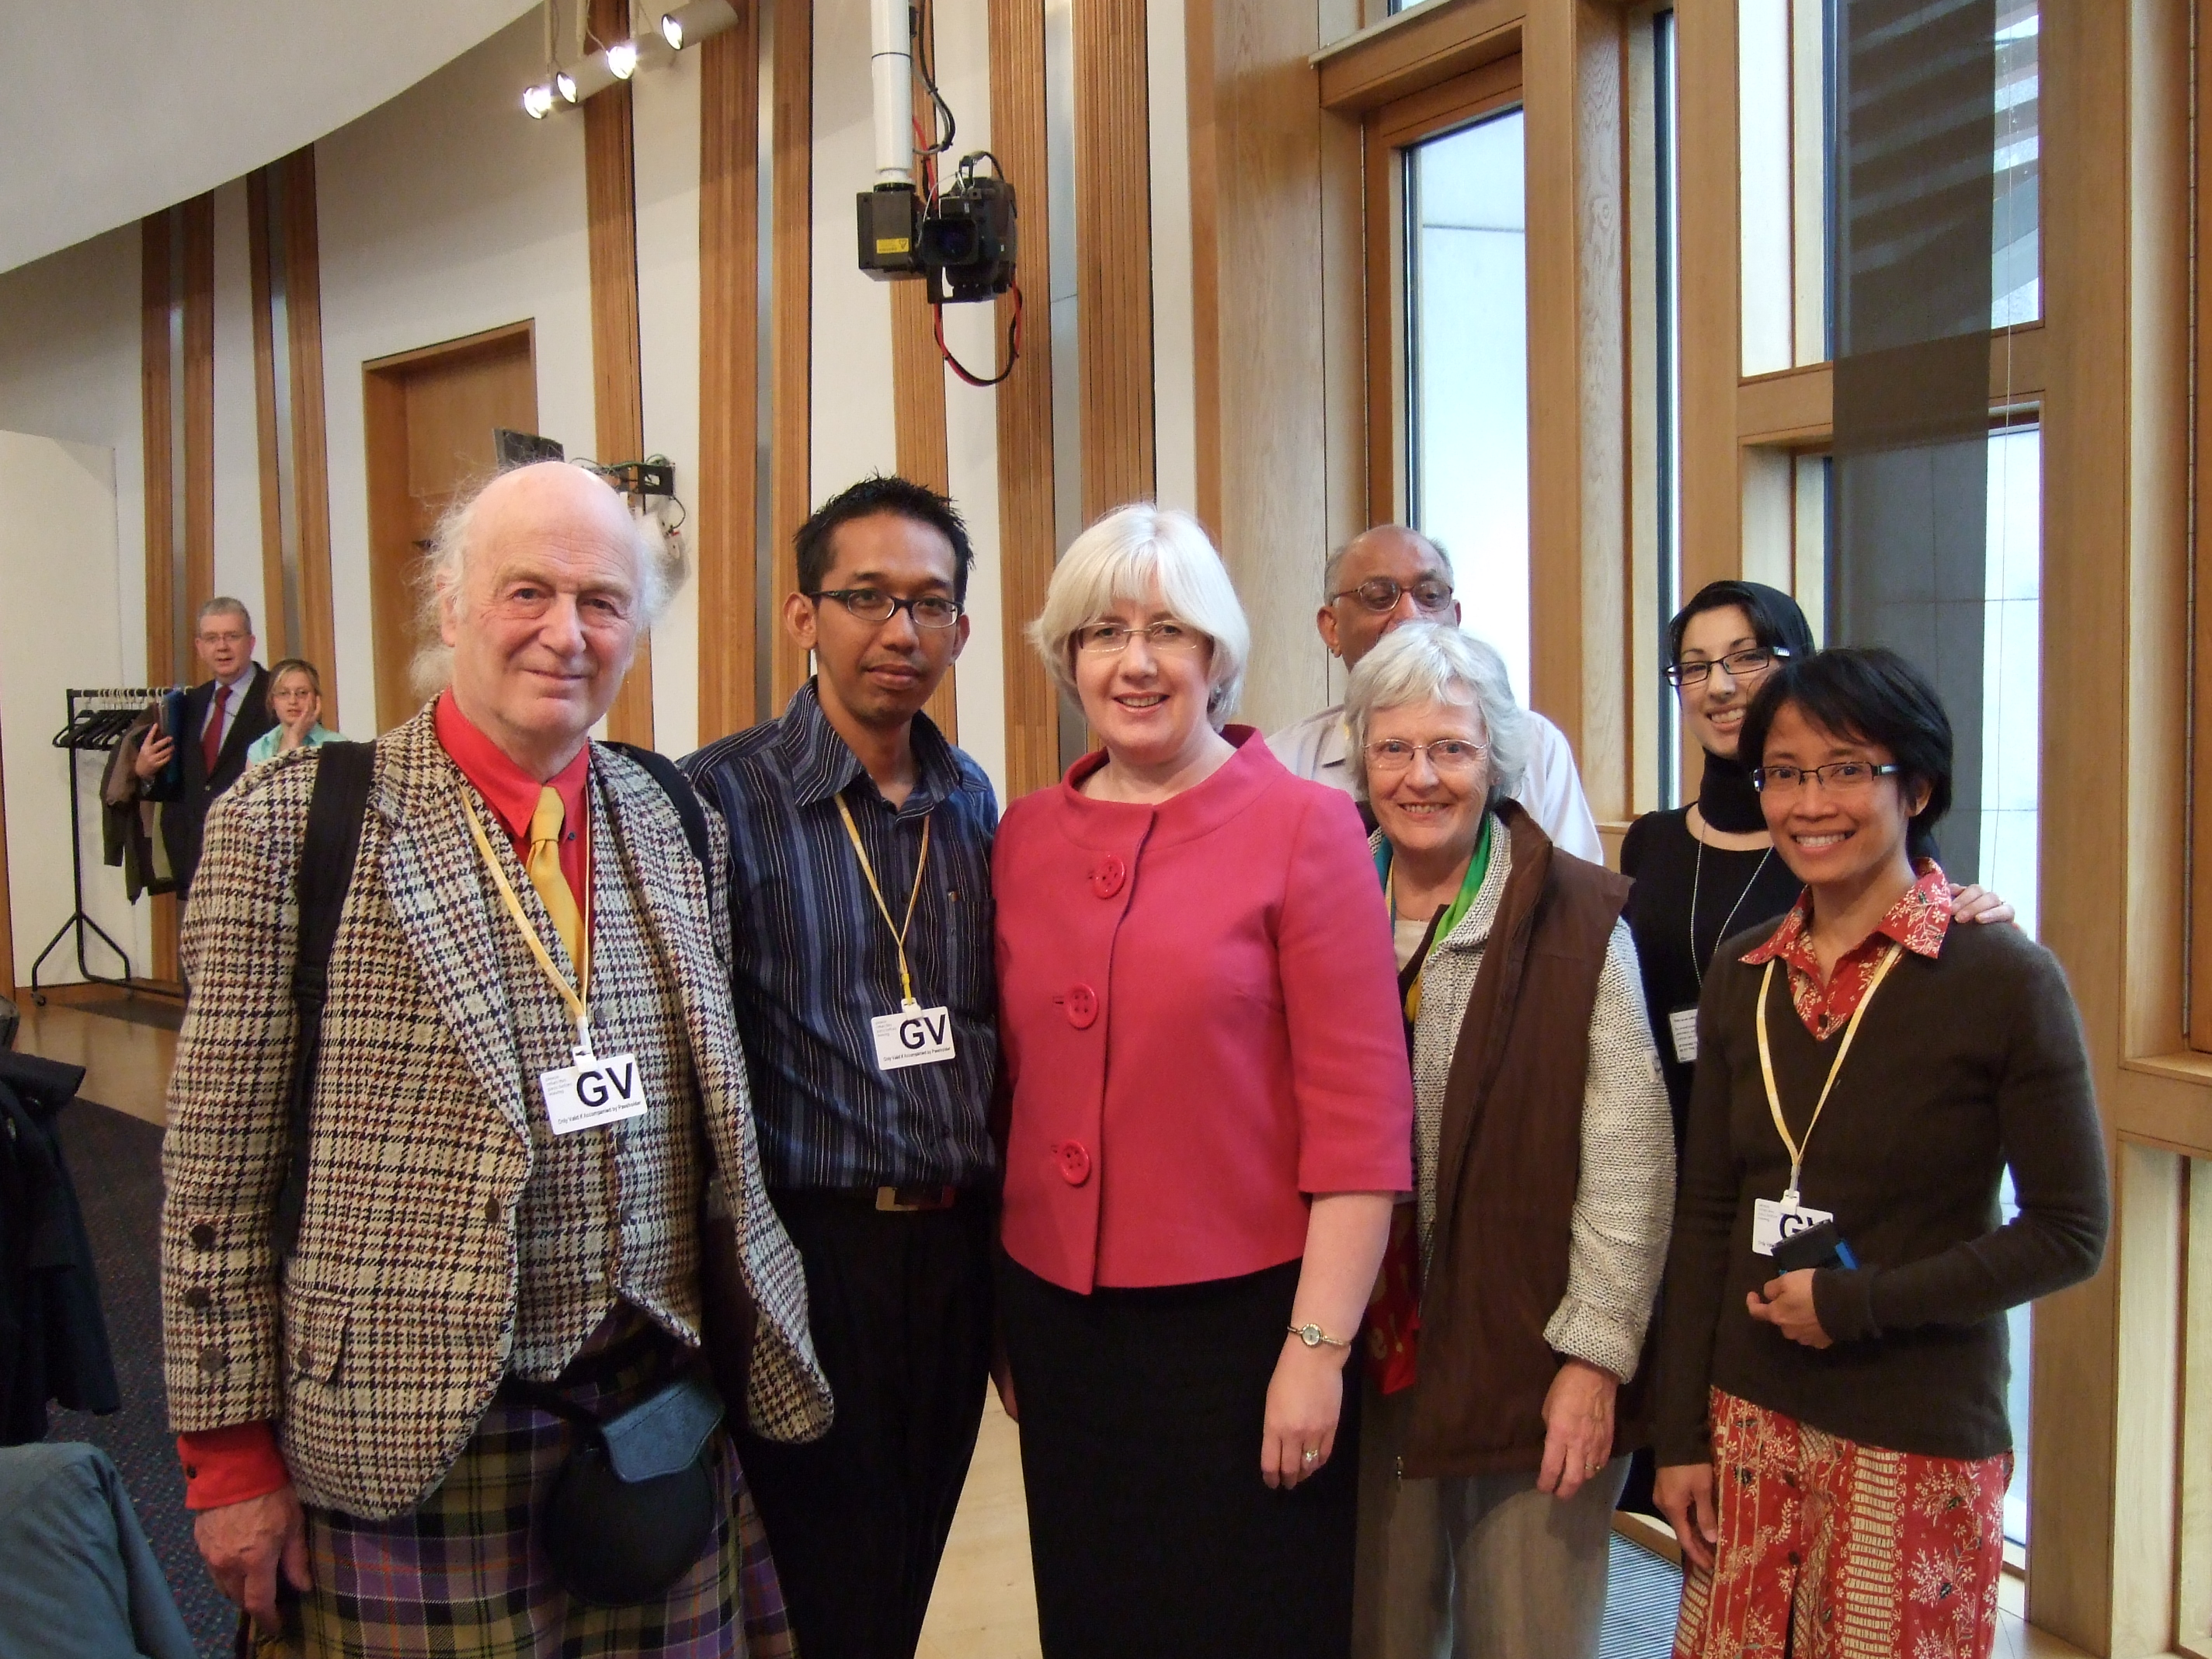 Patricia Ferguson MSP, with Ardi and Adriana and others, Scottish parliament